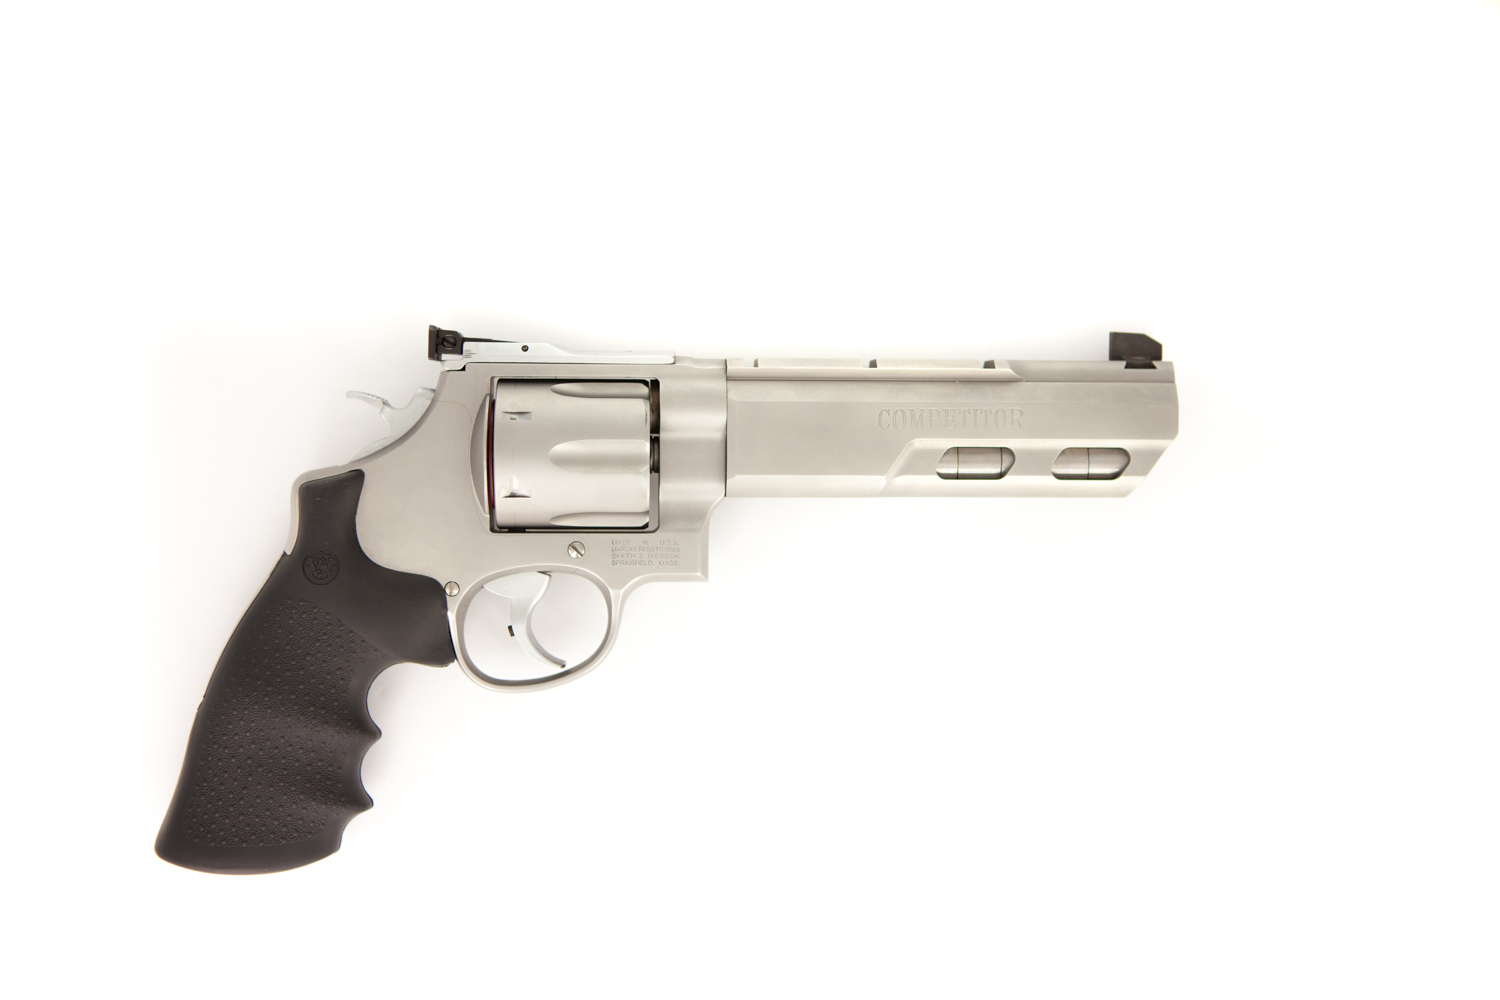 S&W 629 Competitor